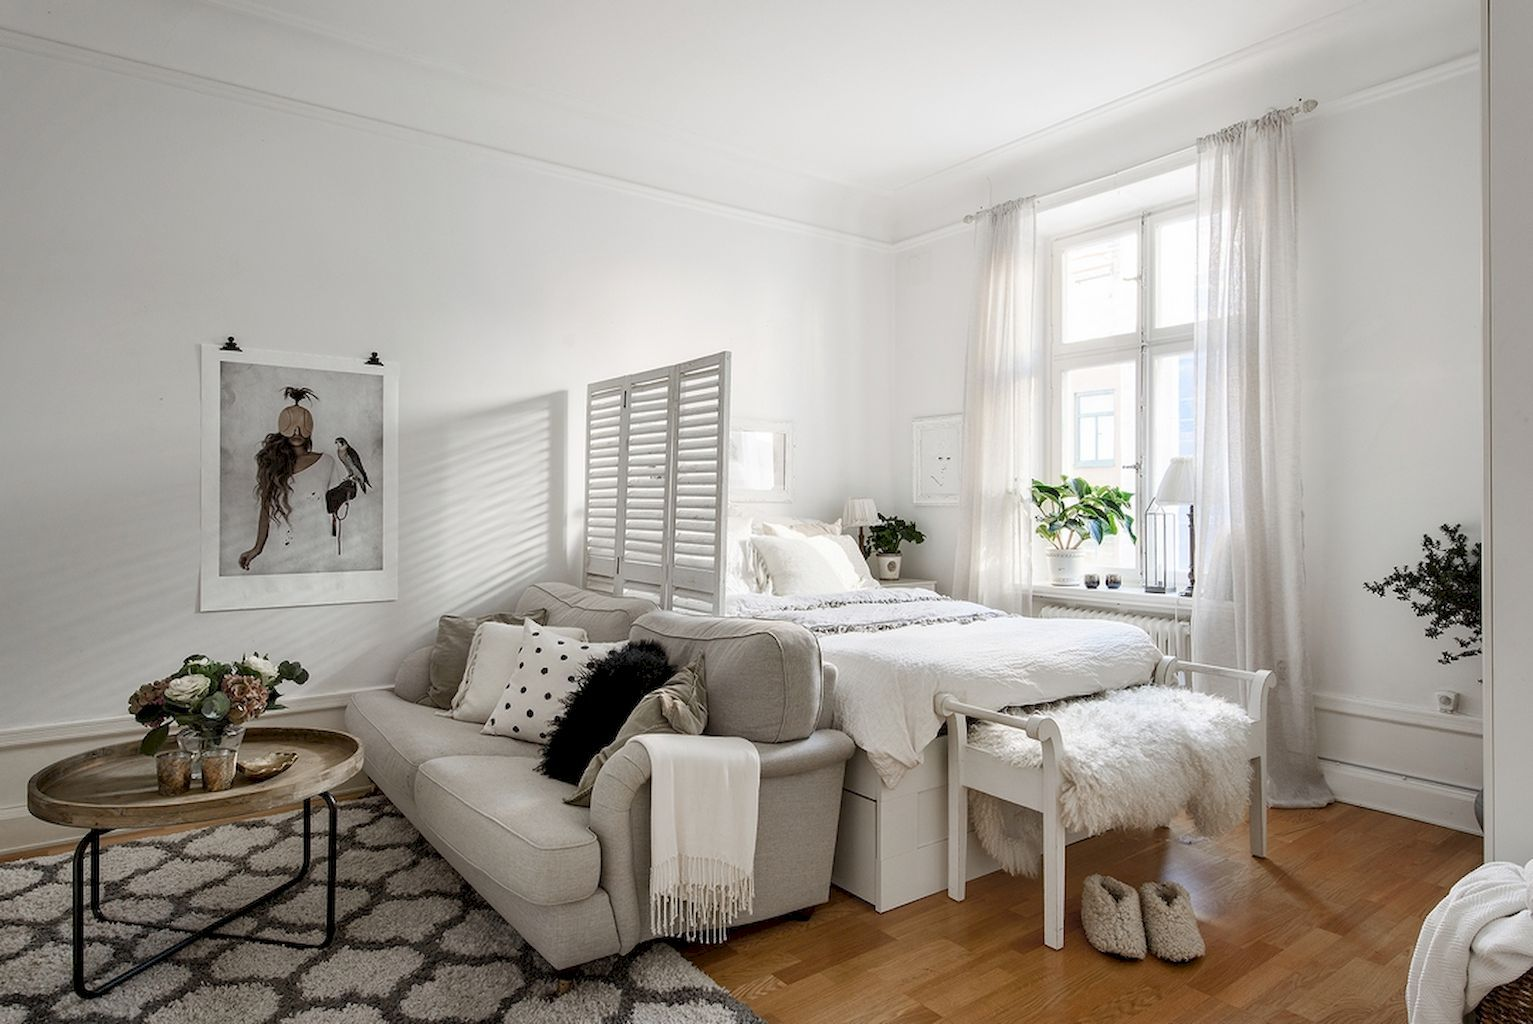 Adorable 140 Stunning Apartment Decorating Ideas And Makeover Https Coachdecor Com Living Room Decor Apartment Small Room Design Studio Apartment Decorating